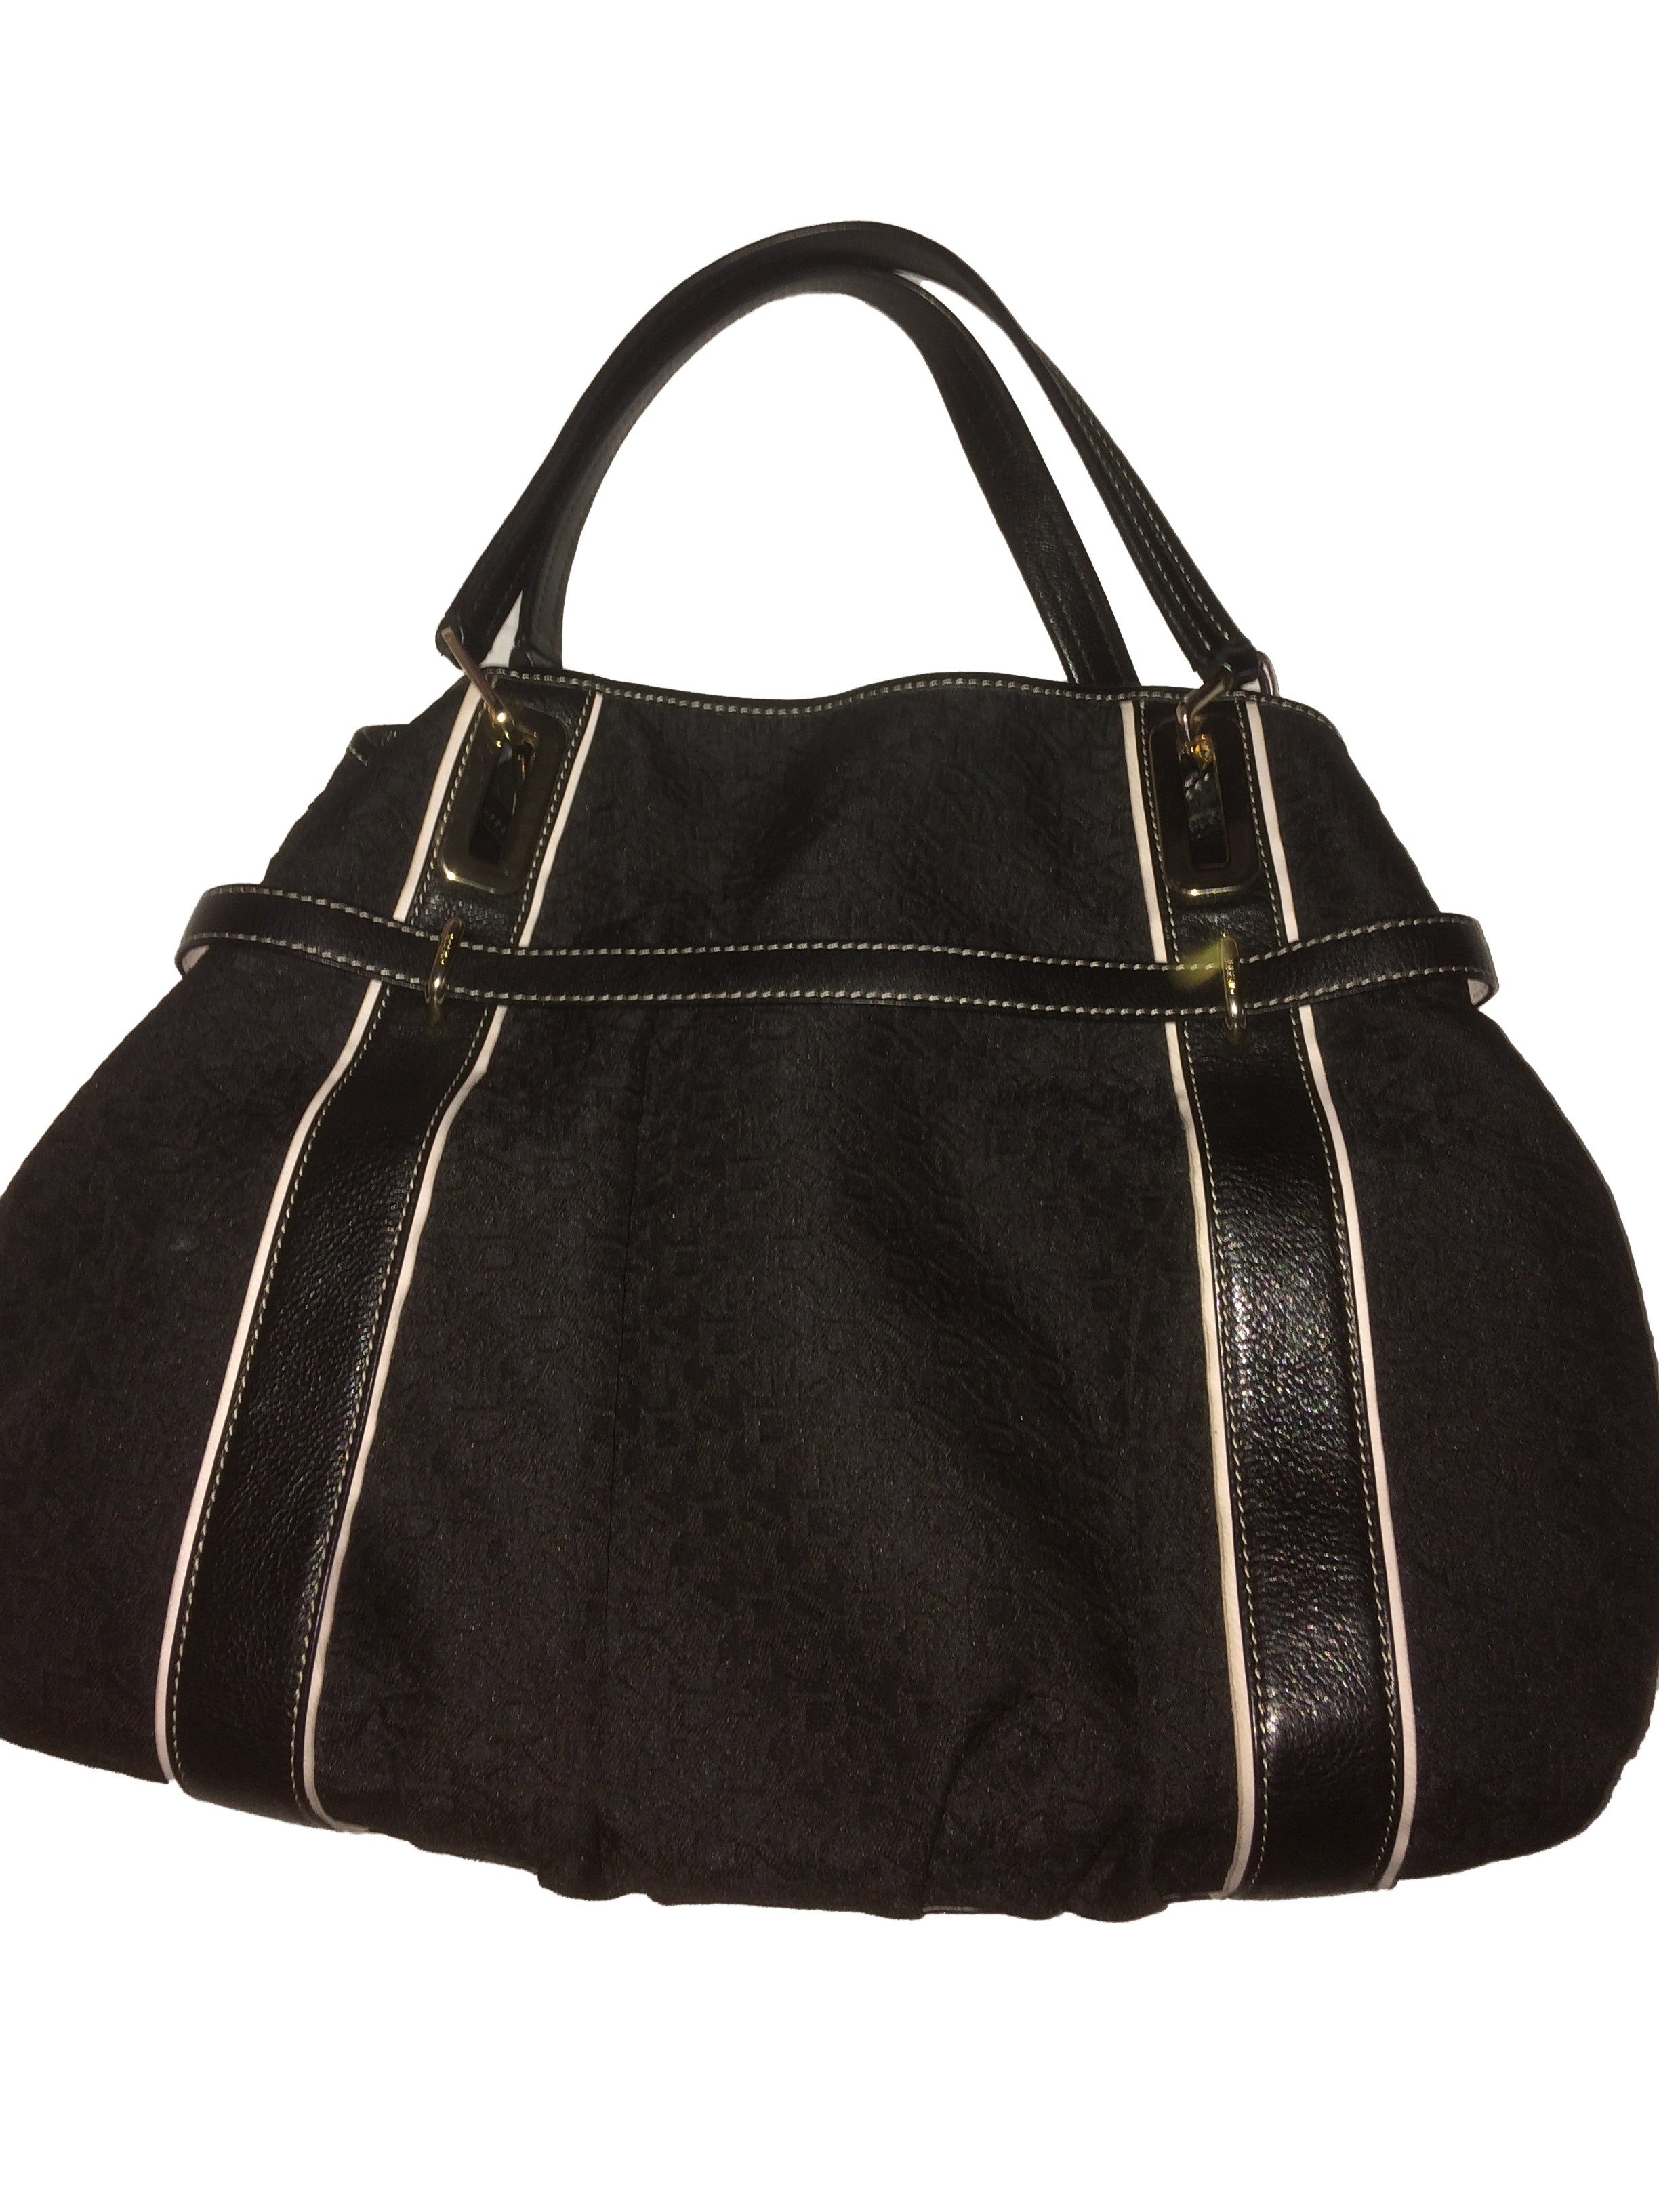 DKNY Monogram Black Bag